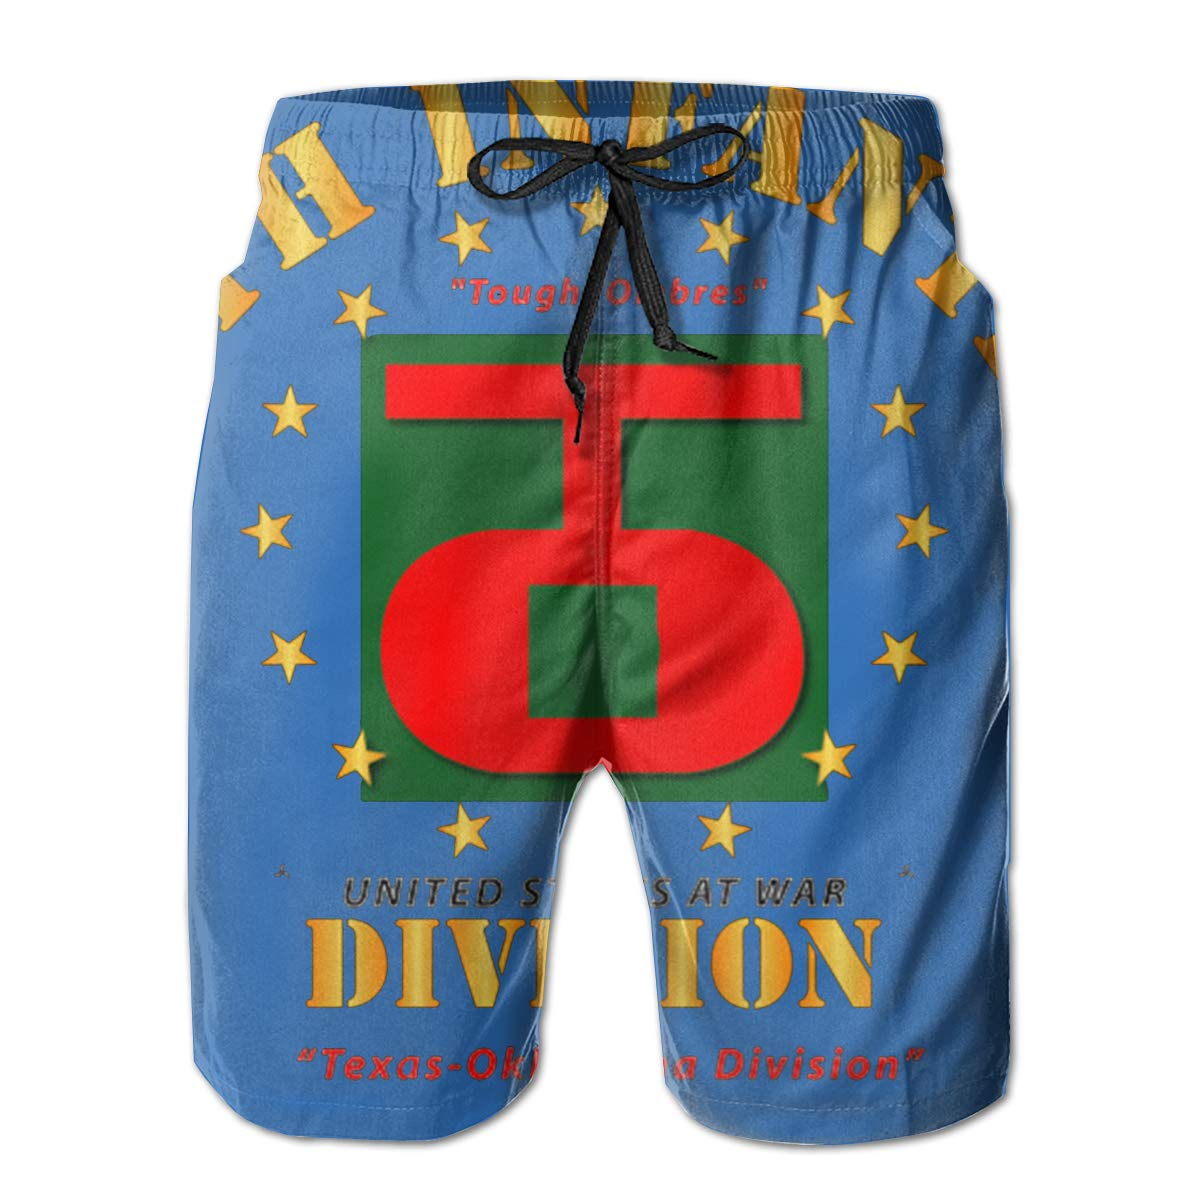 90th Infantry Division Tough Ombres Mens Swim Trunks Board Shorts